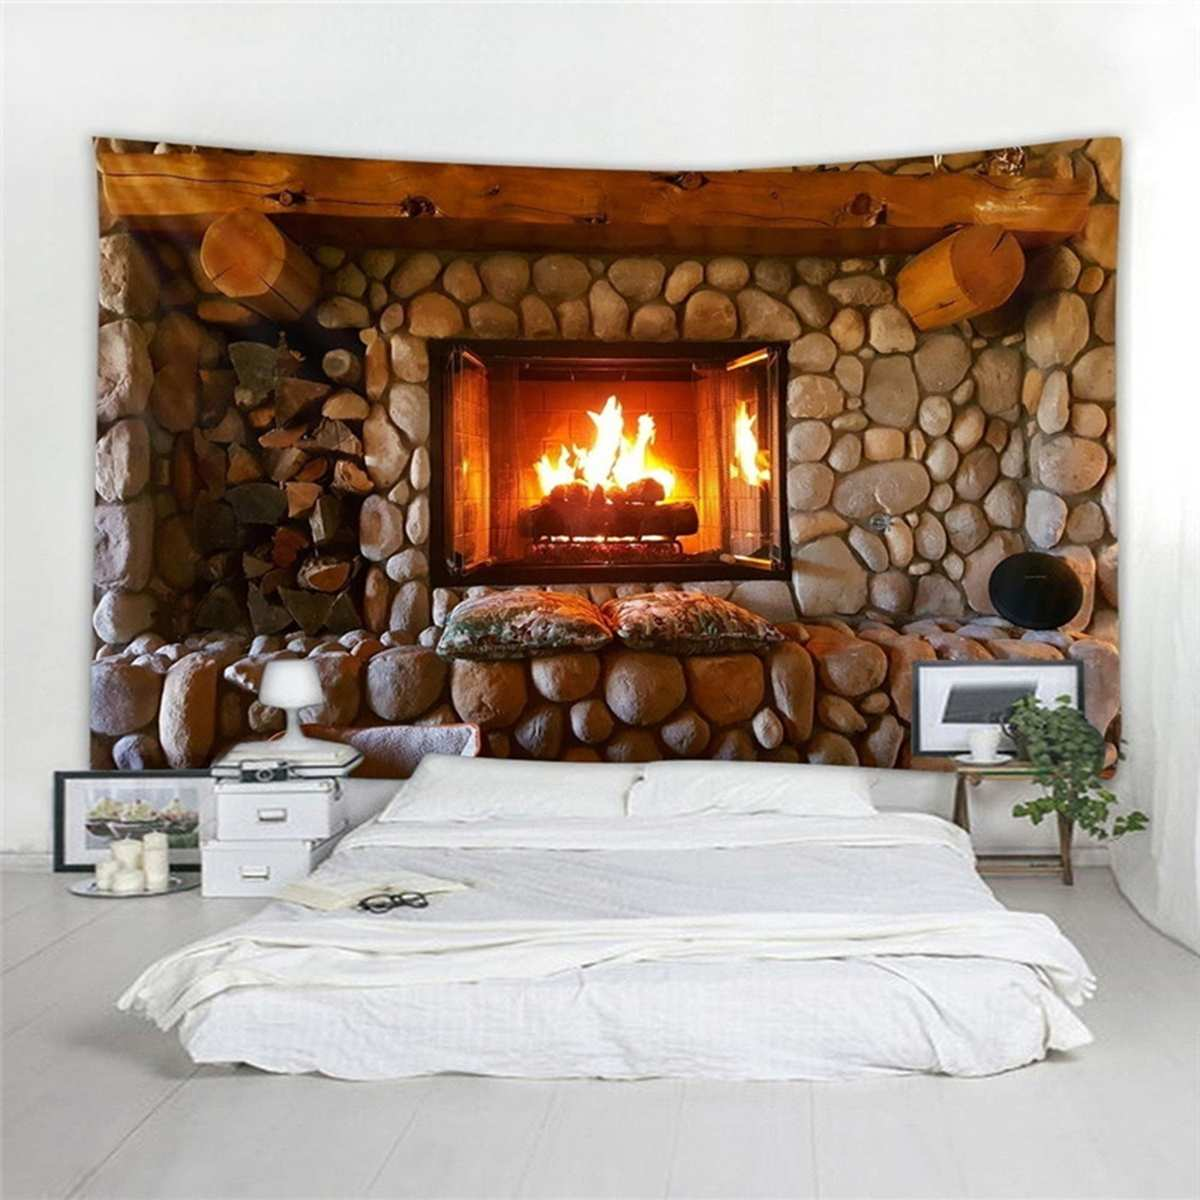 3D Tapestry Wall Hanging Tapestries Curtain Fireplace Christmas Rock Stone Bedspread Beach Towel Tablecloth Wall Art Decoration